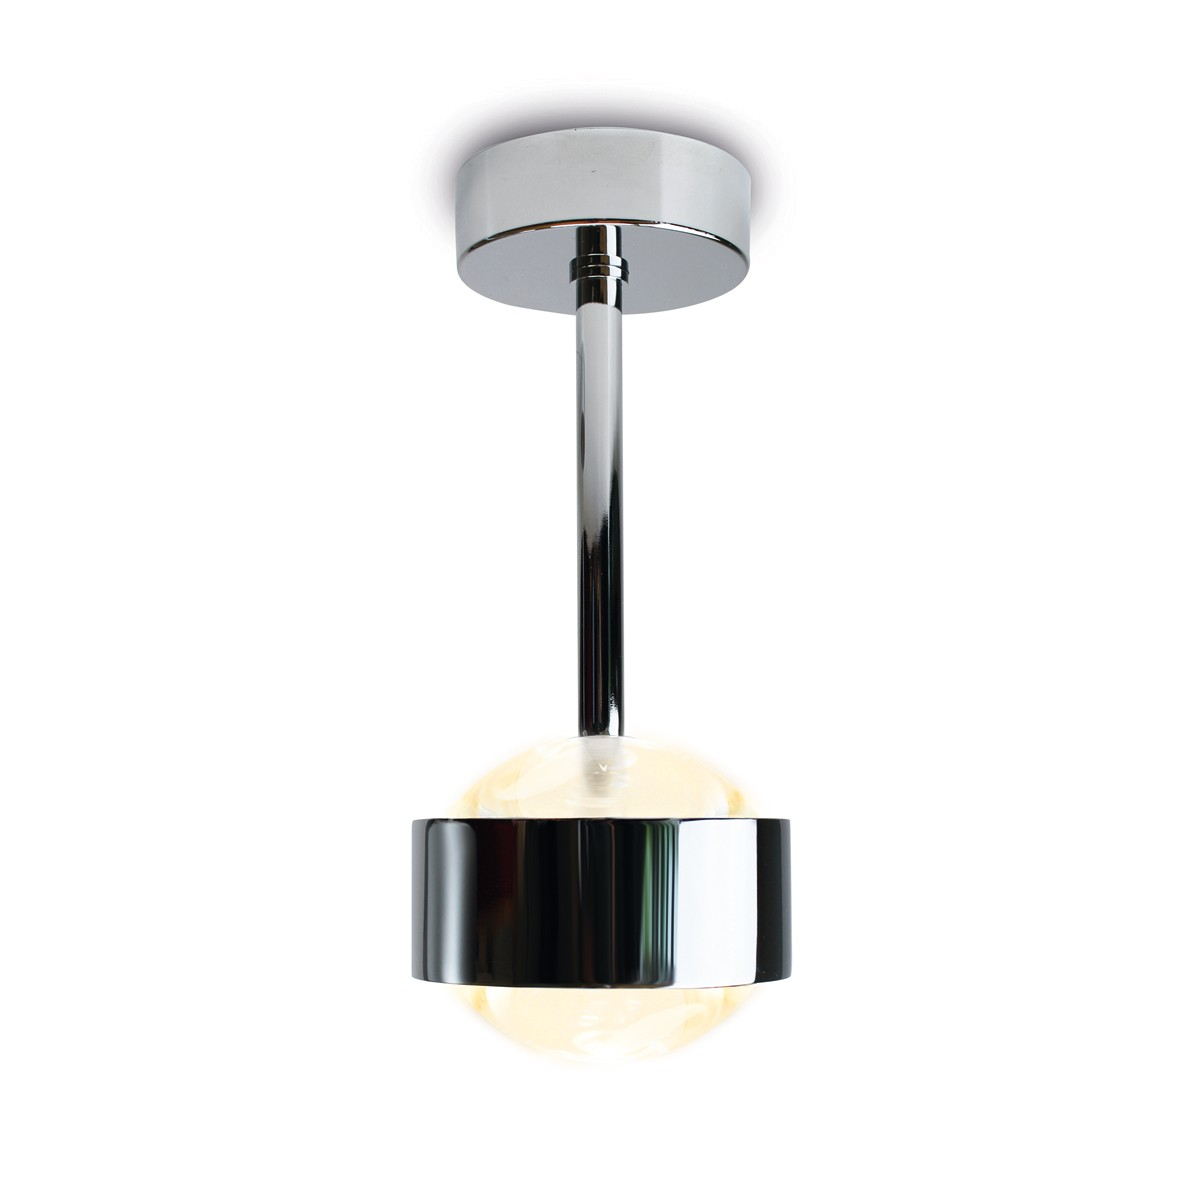 Top Light Puk Eye Ceiling Deckenleuchte